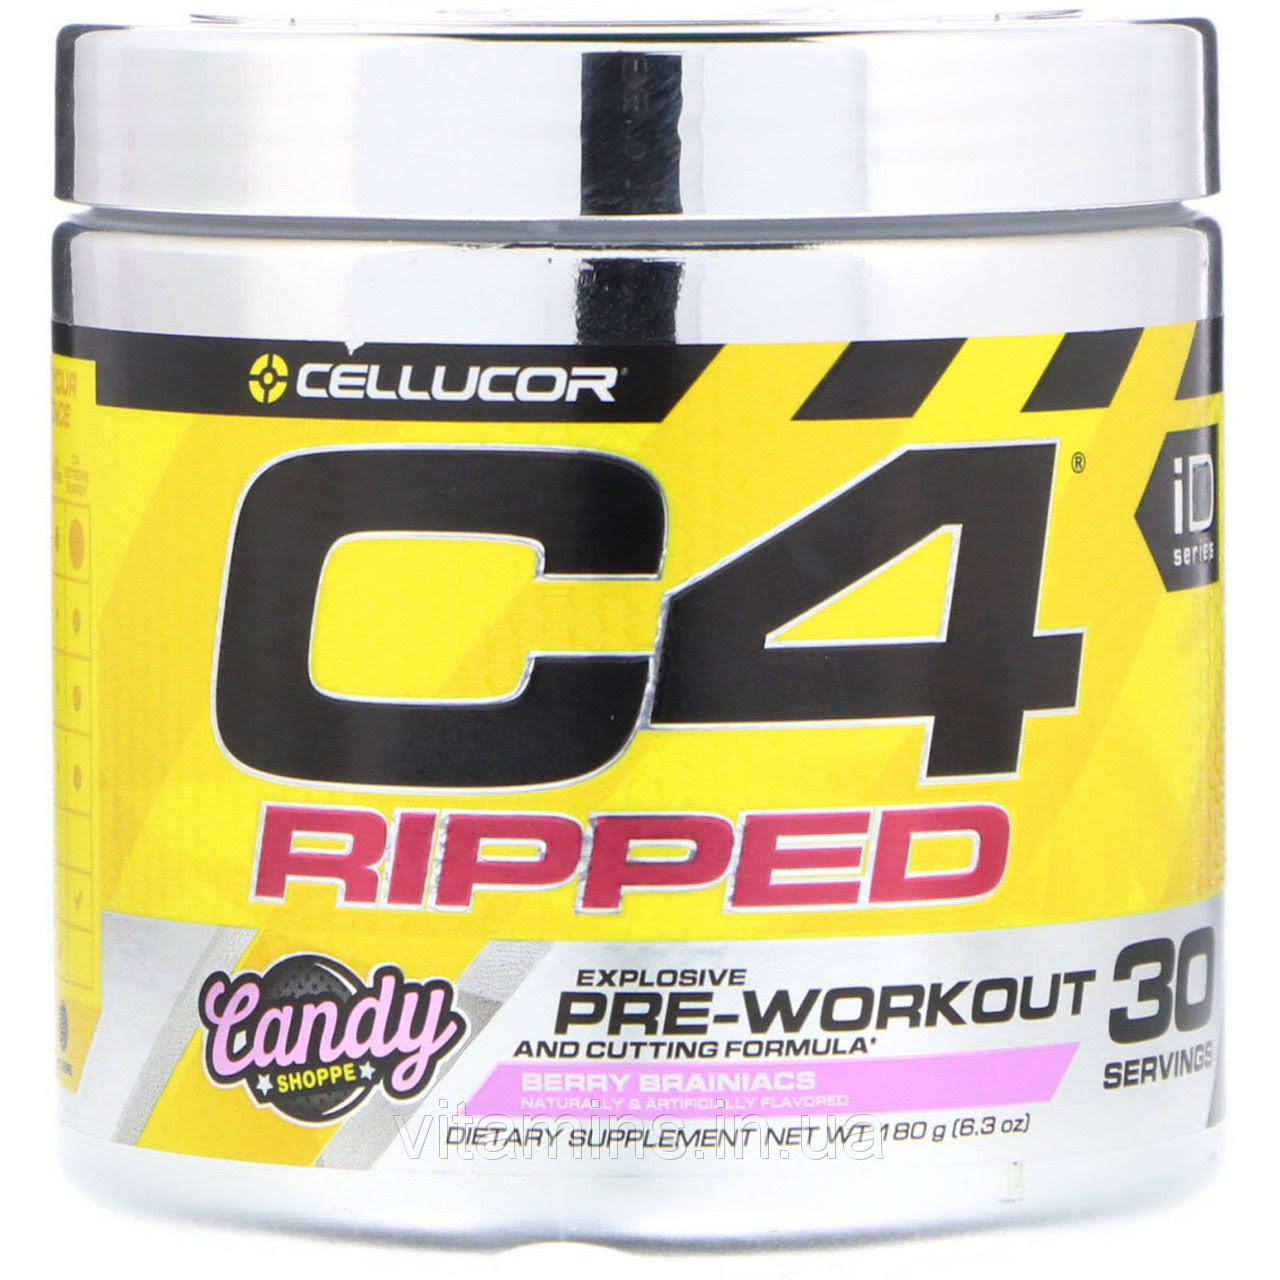 Cellucor C4 Ripped - 30 Servings - Berry Brainiacs